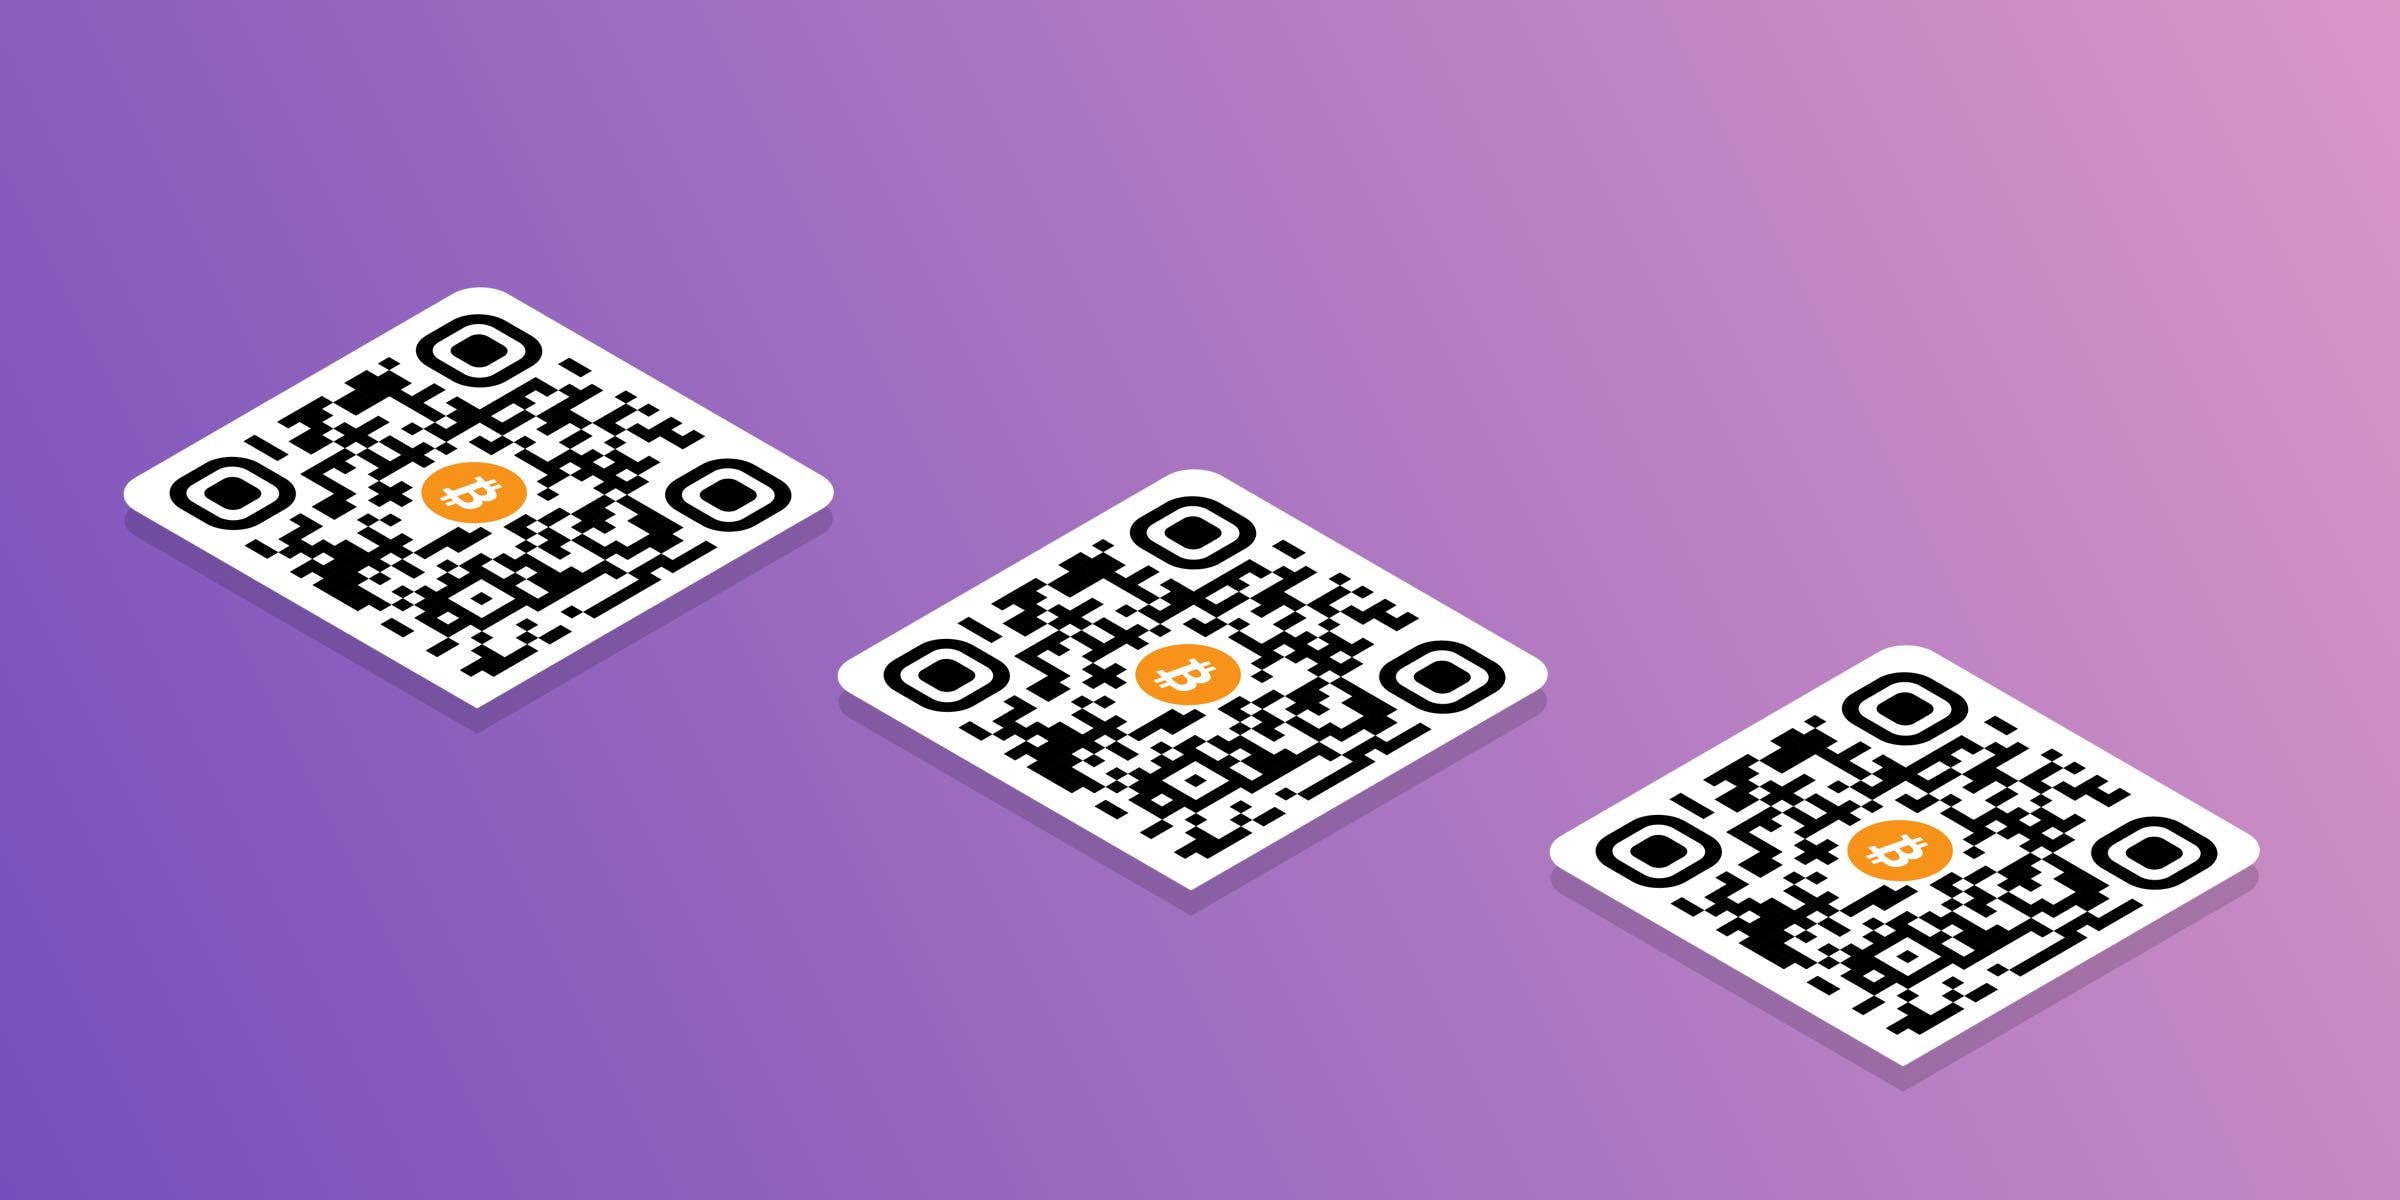 three aligned qr codes with bitcoin addresses on them